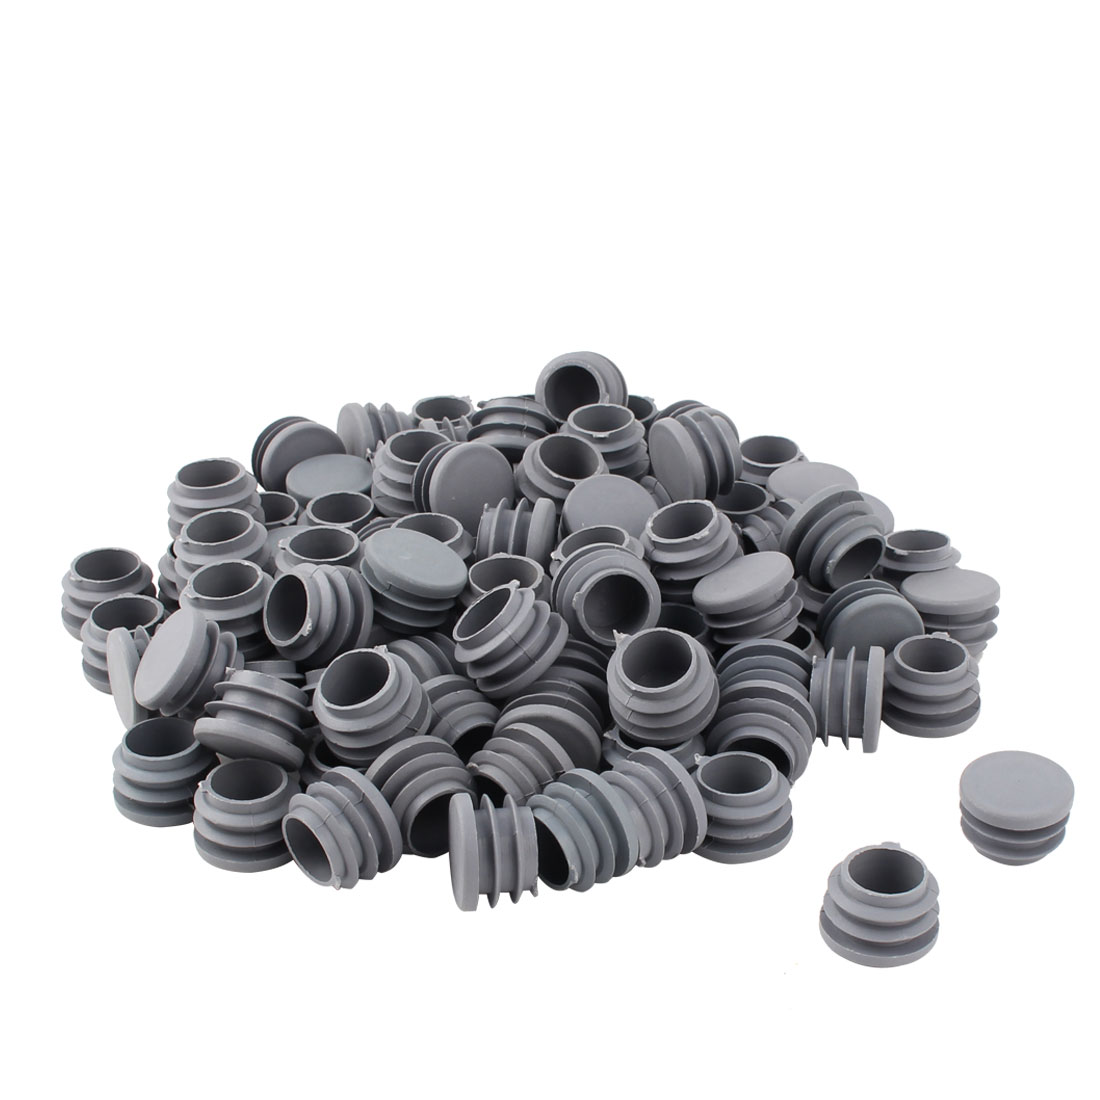 Furniture Table Chair Plastic Round Tube Pipe Insert Cap Cover Protector Gray 25mm Dia 100pcs